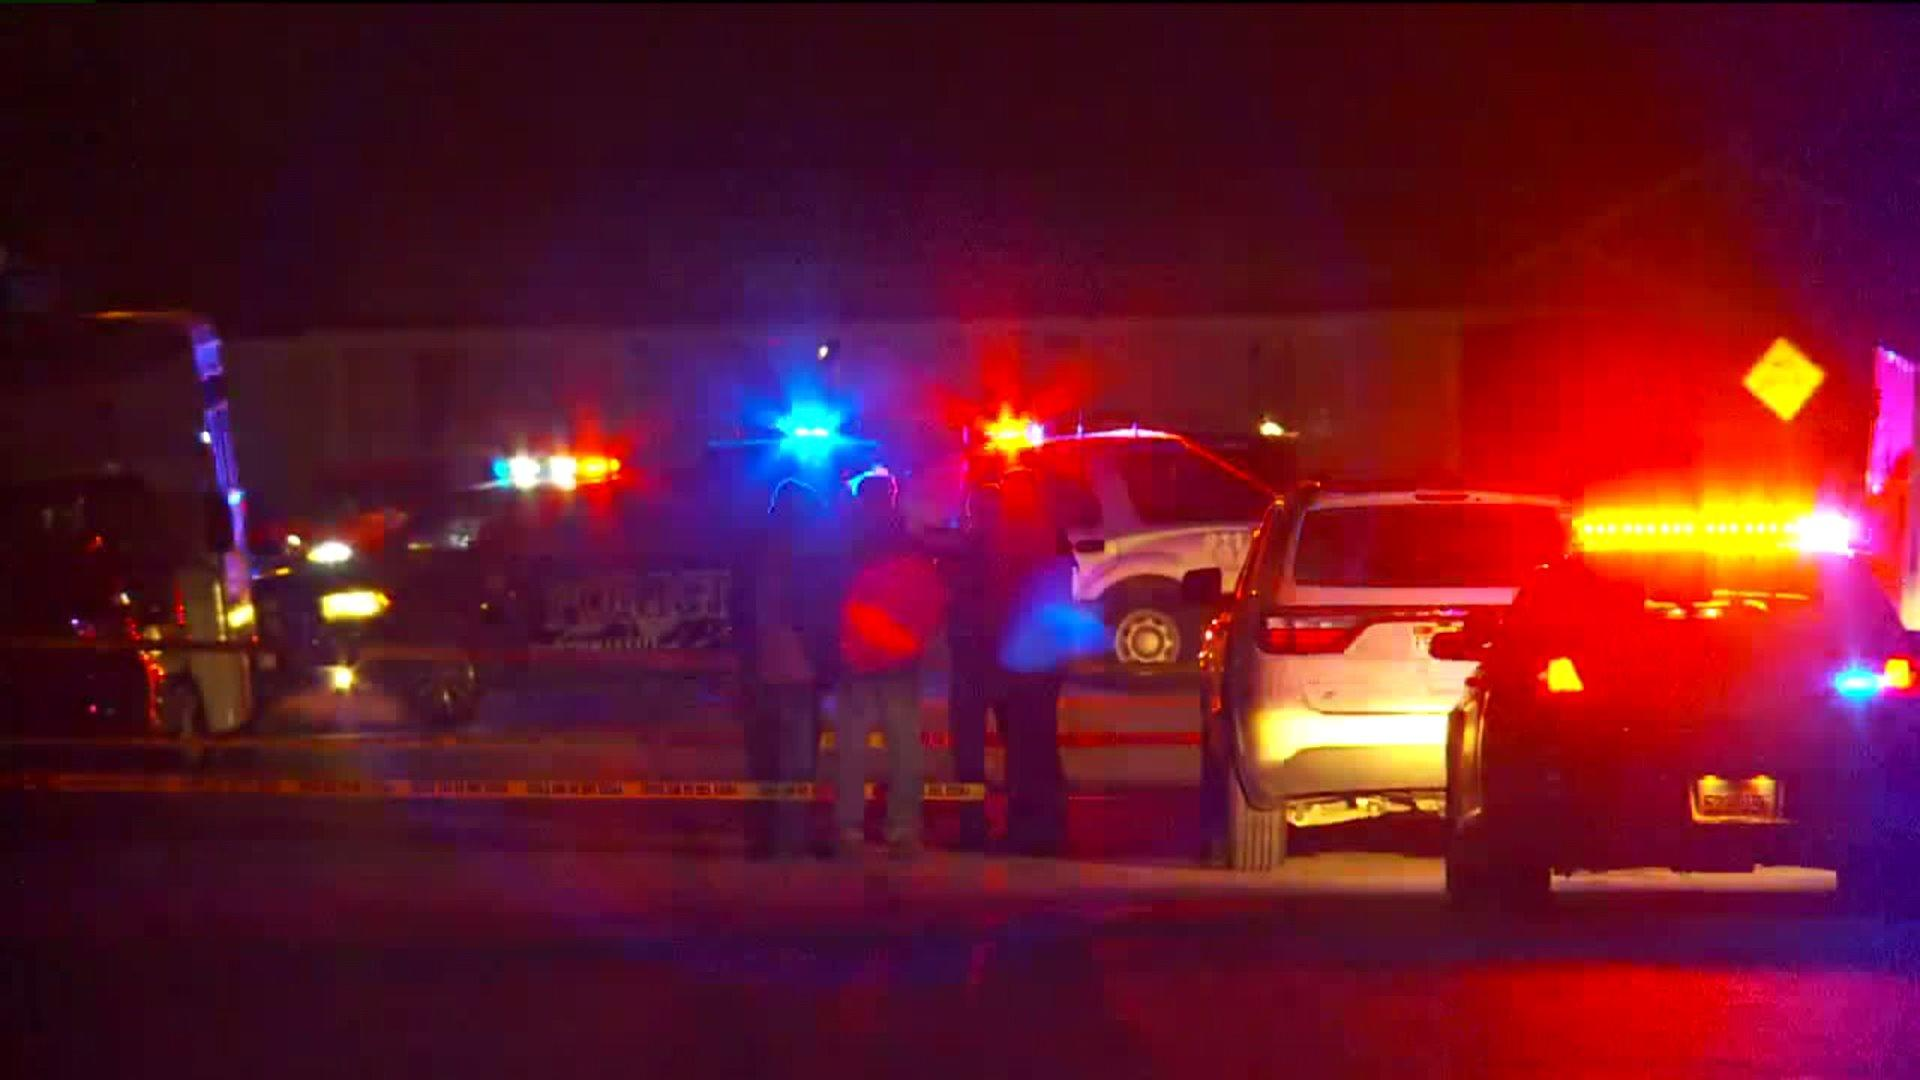 4 killed, 1 injured in family shooting in Utah suburb